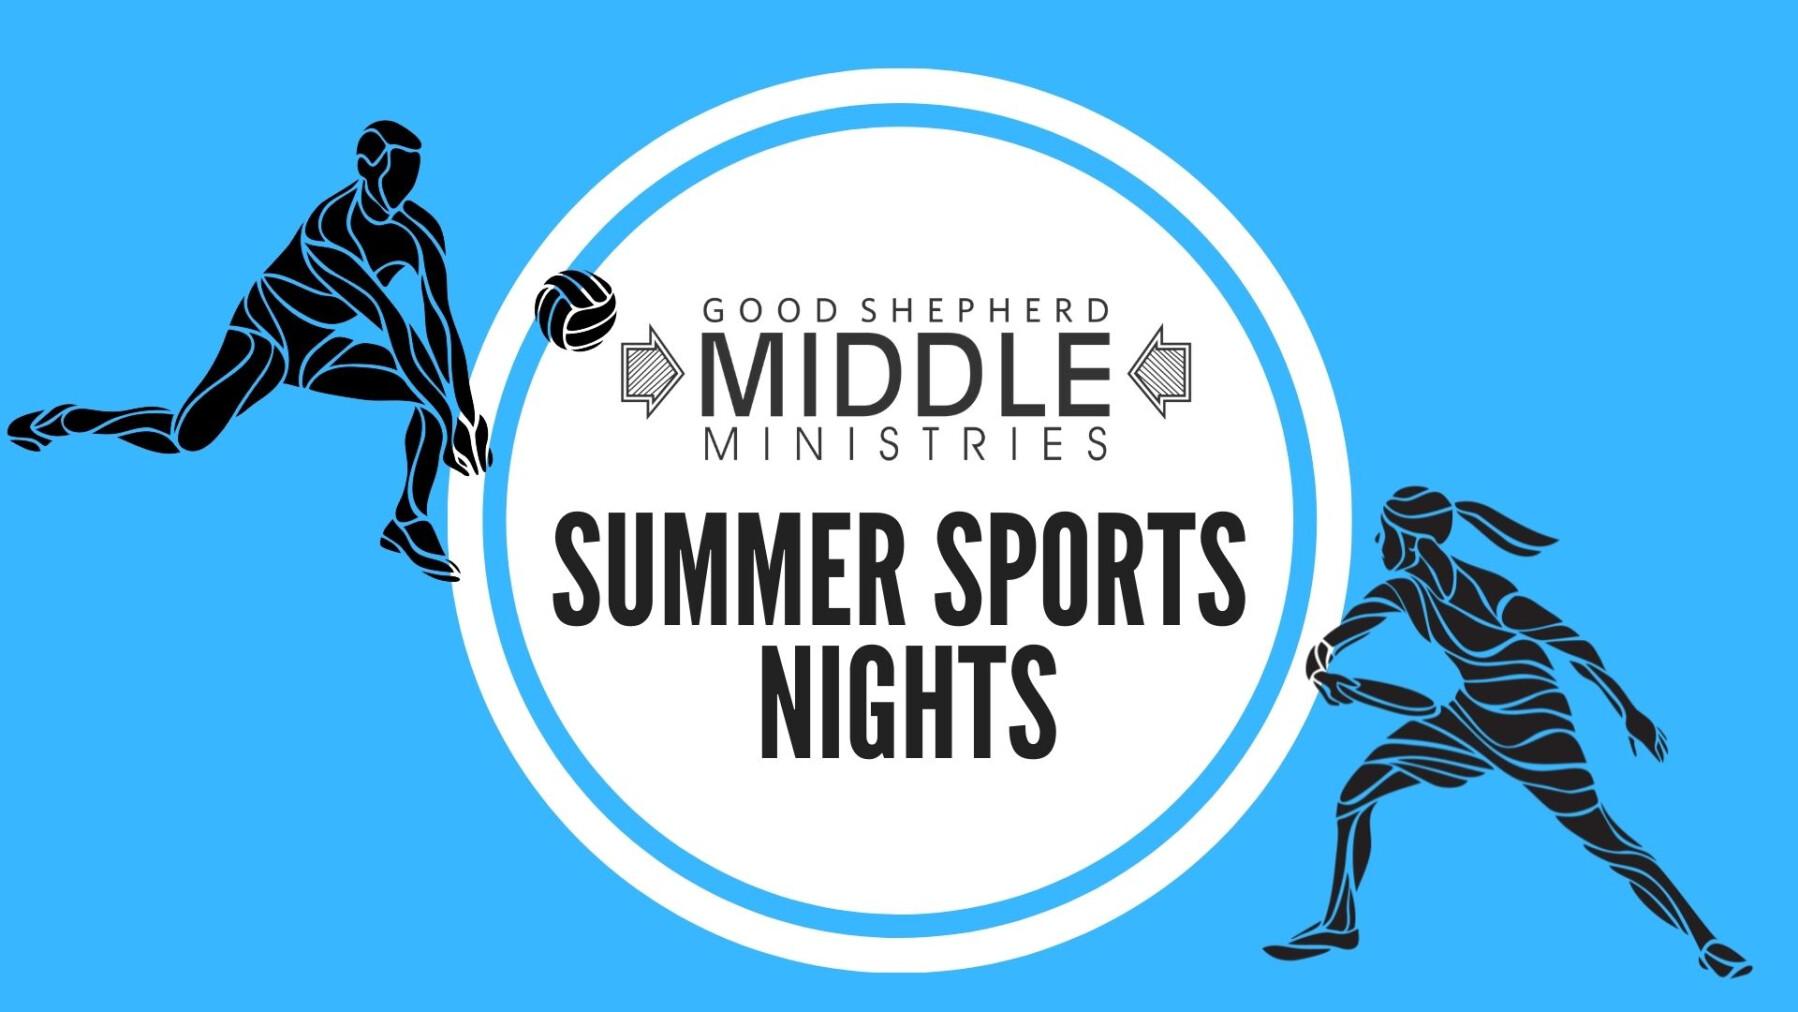 Middle Ministries Summer Sports Night